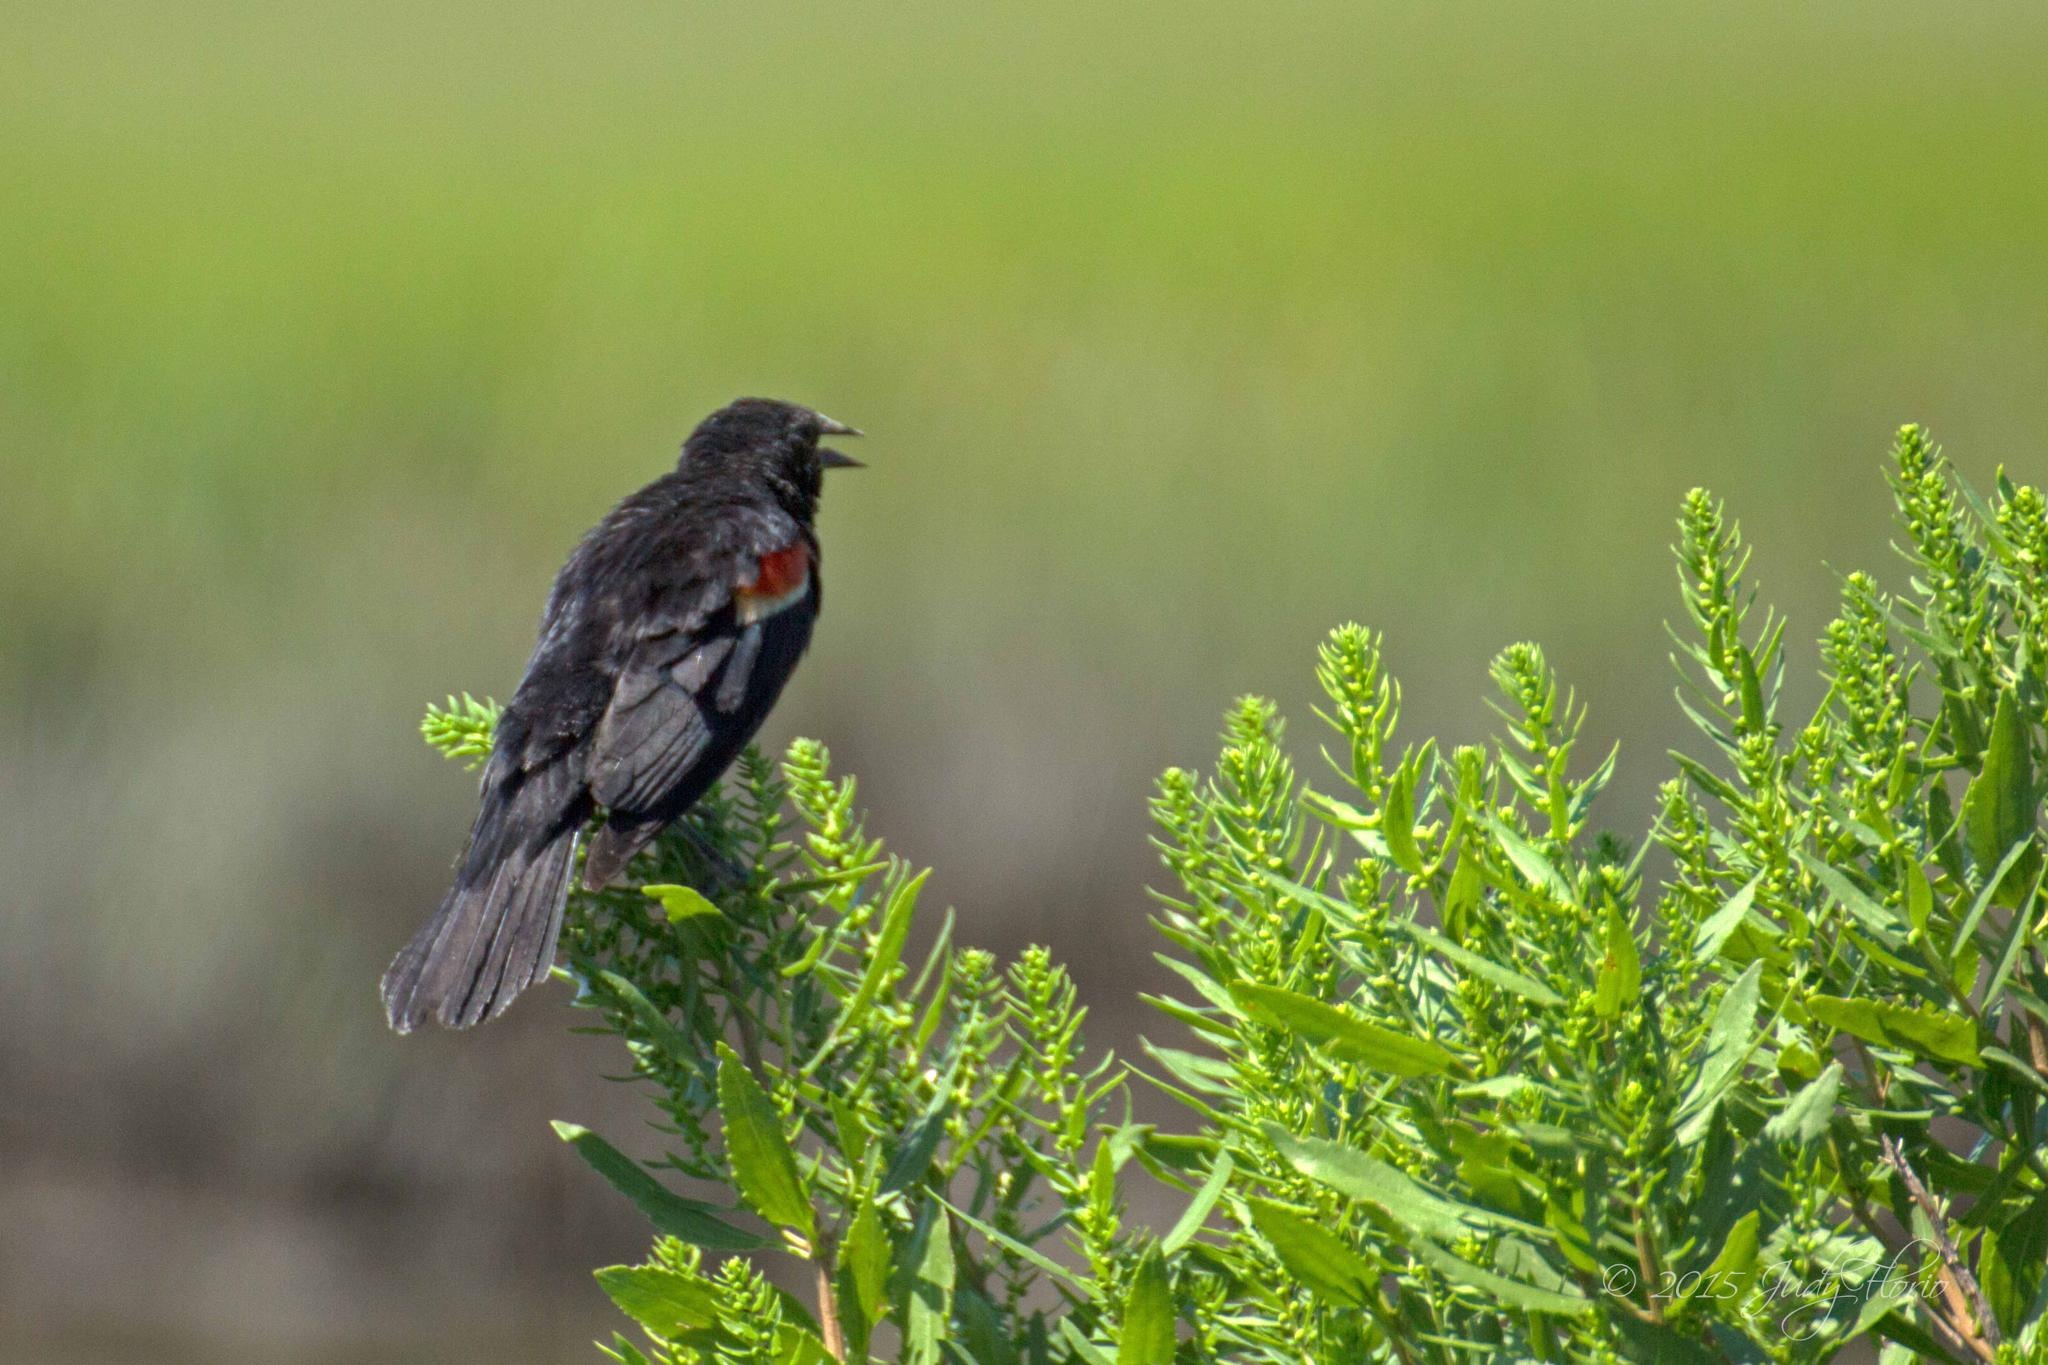 Red wing blackbird by Judy Florio